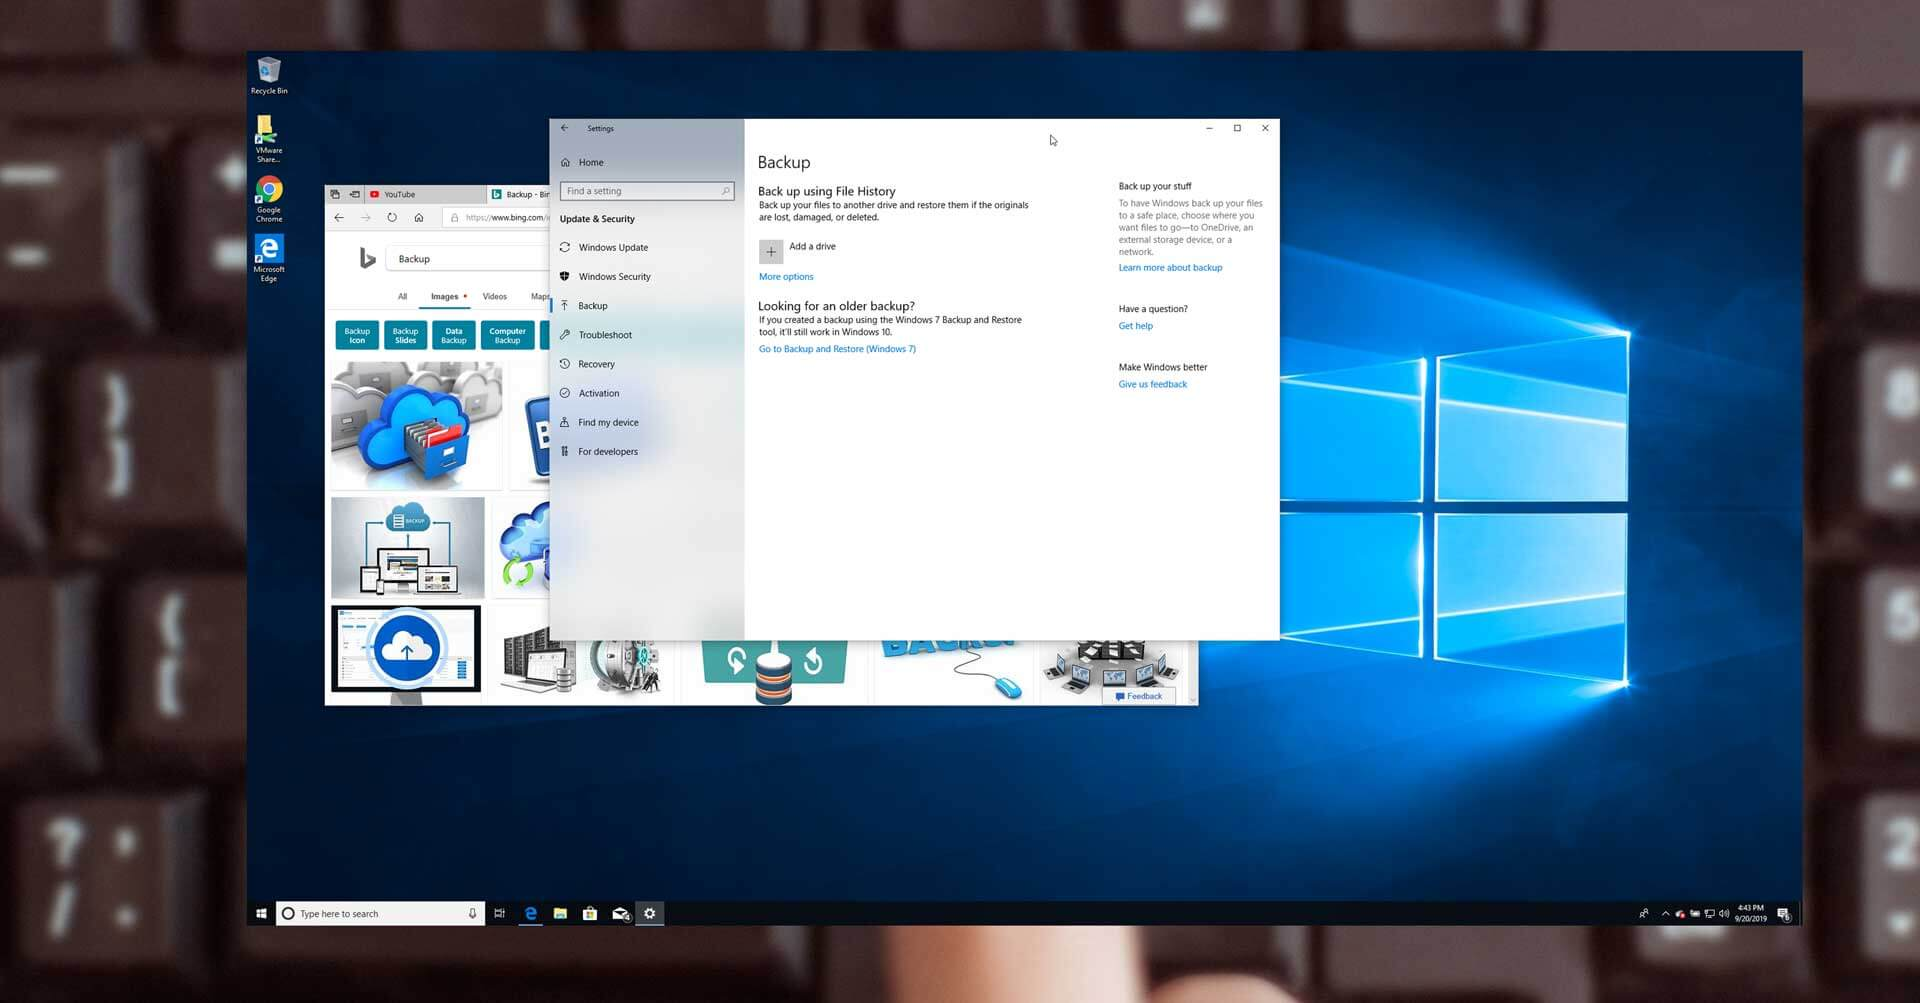 Windows 10 Help: How To Delete Backup Files